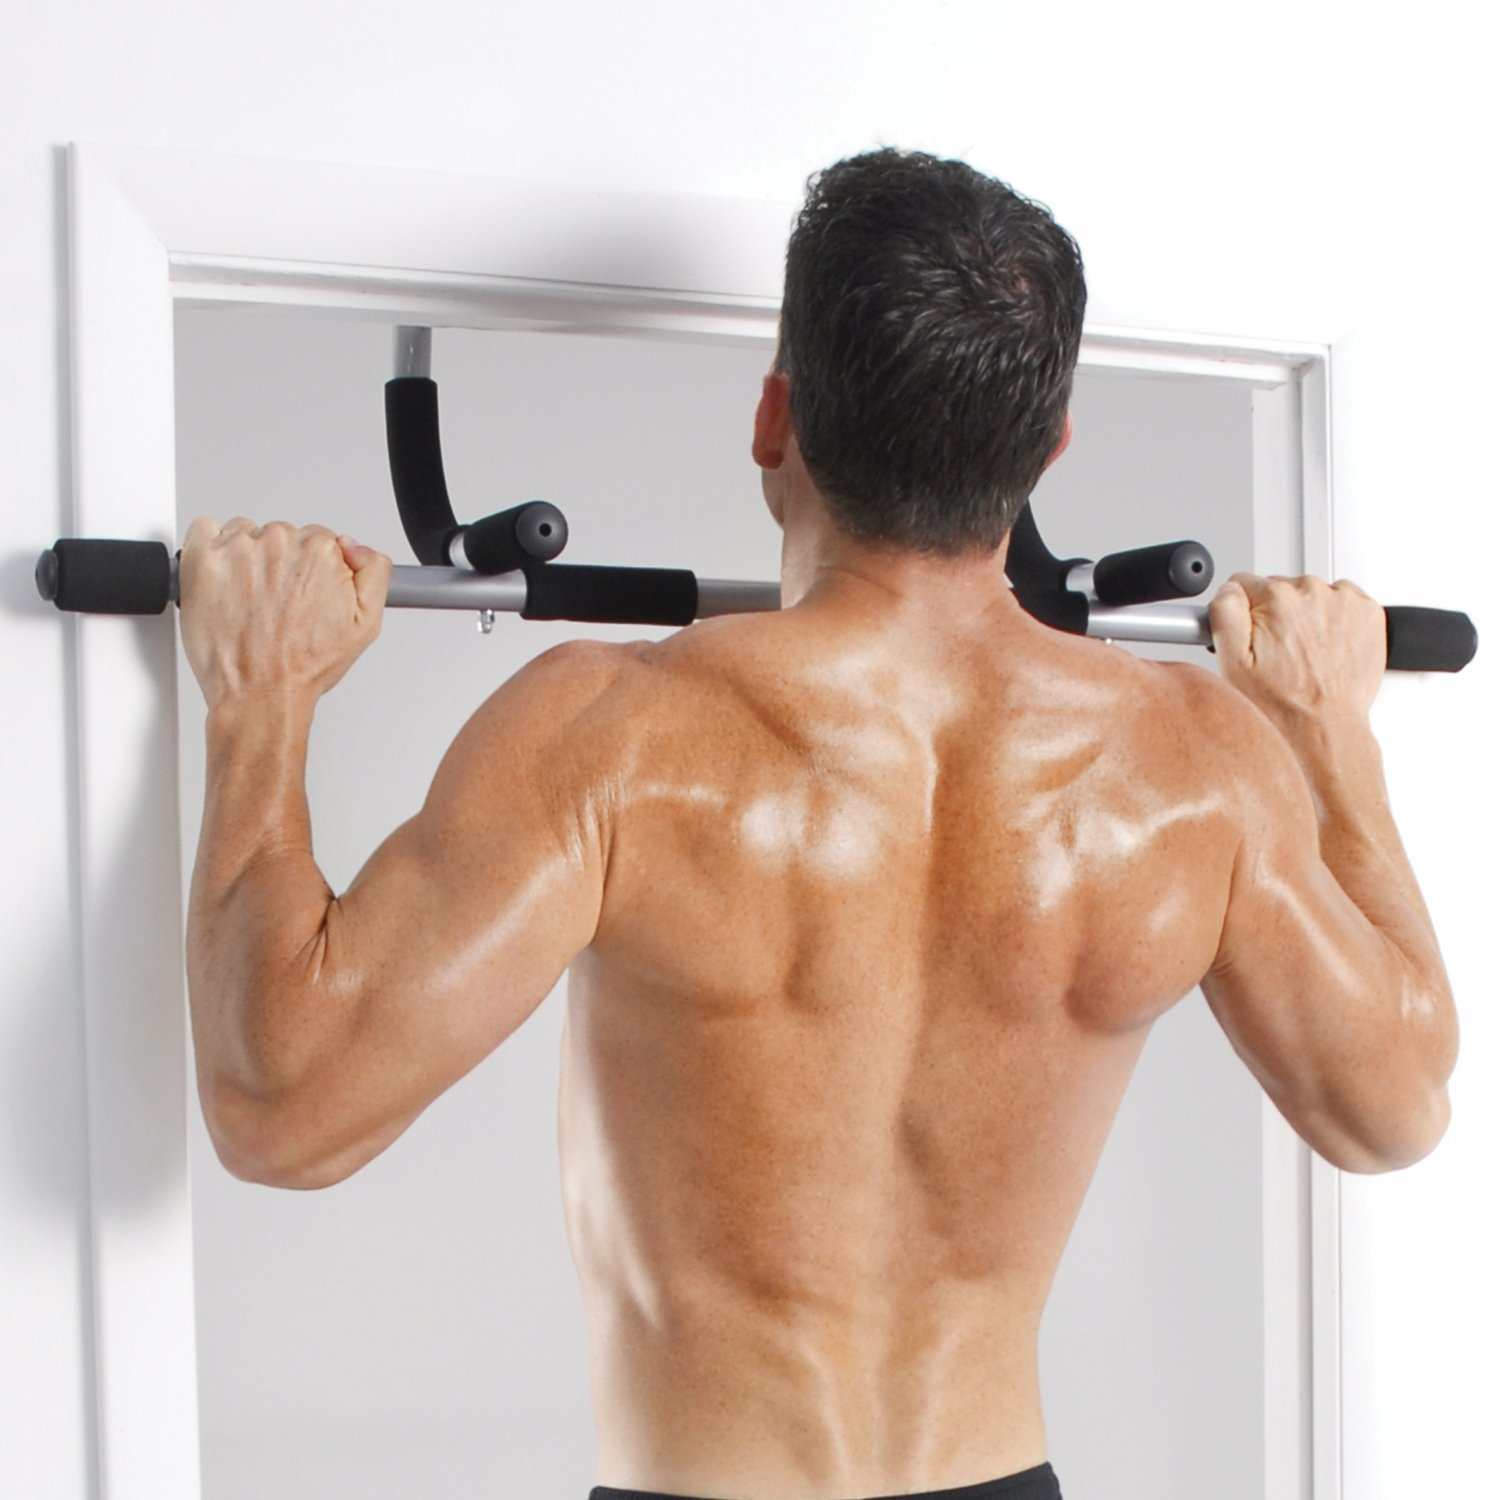 Iron Gym Original Pull Up Bar